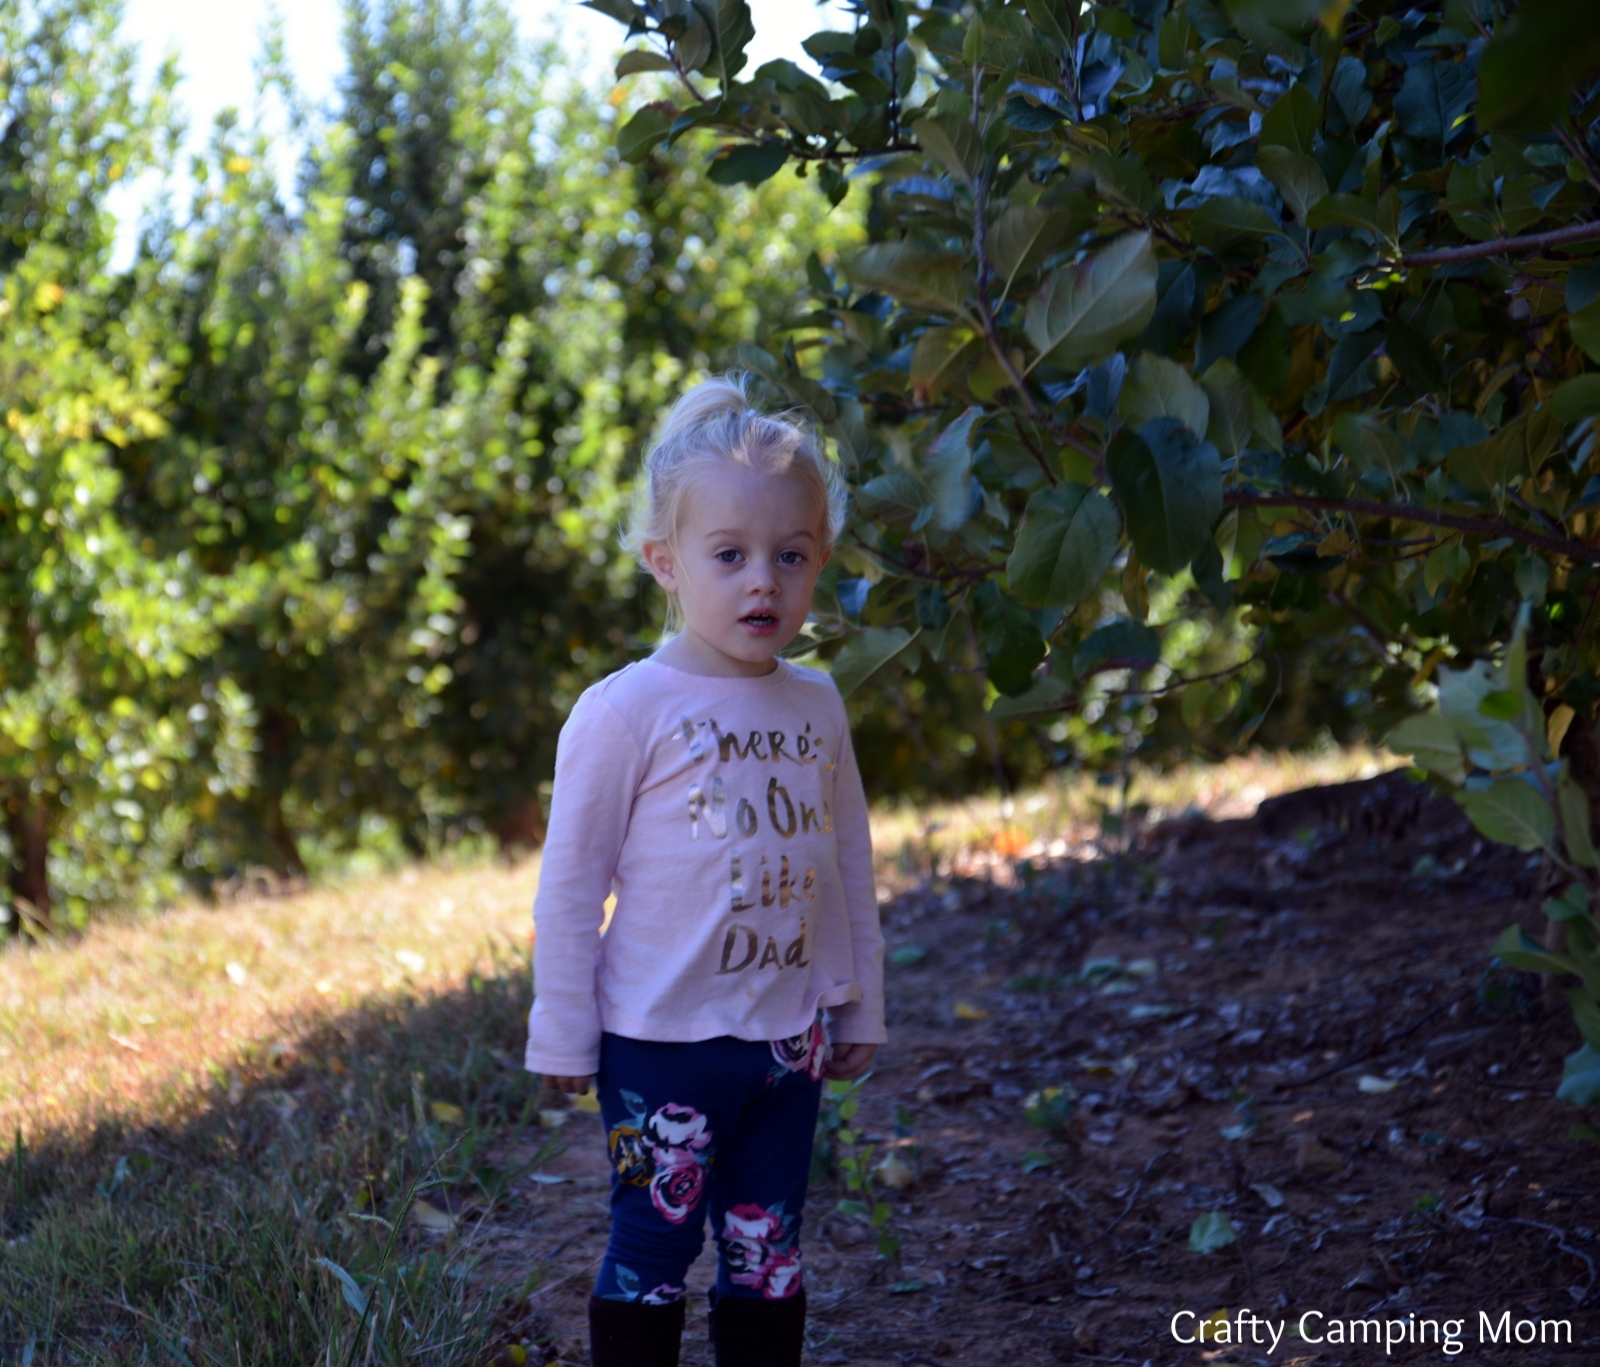 Peach 1 in the apple trees